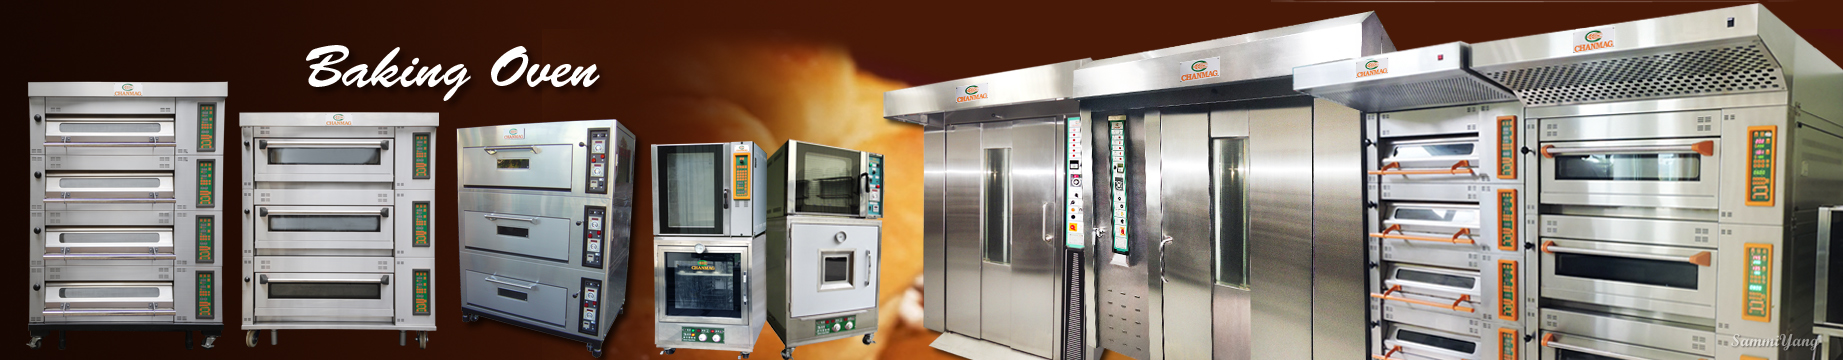 Baking-Oven_CHANMAG-Bakery-Machine